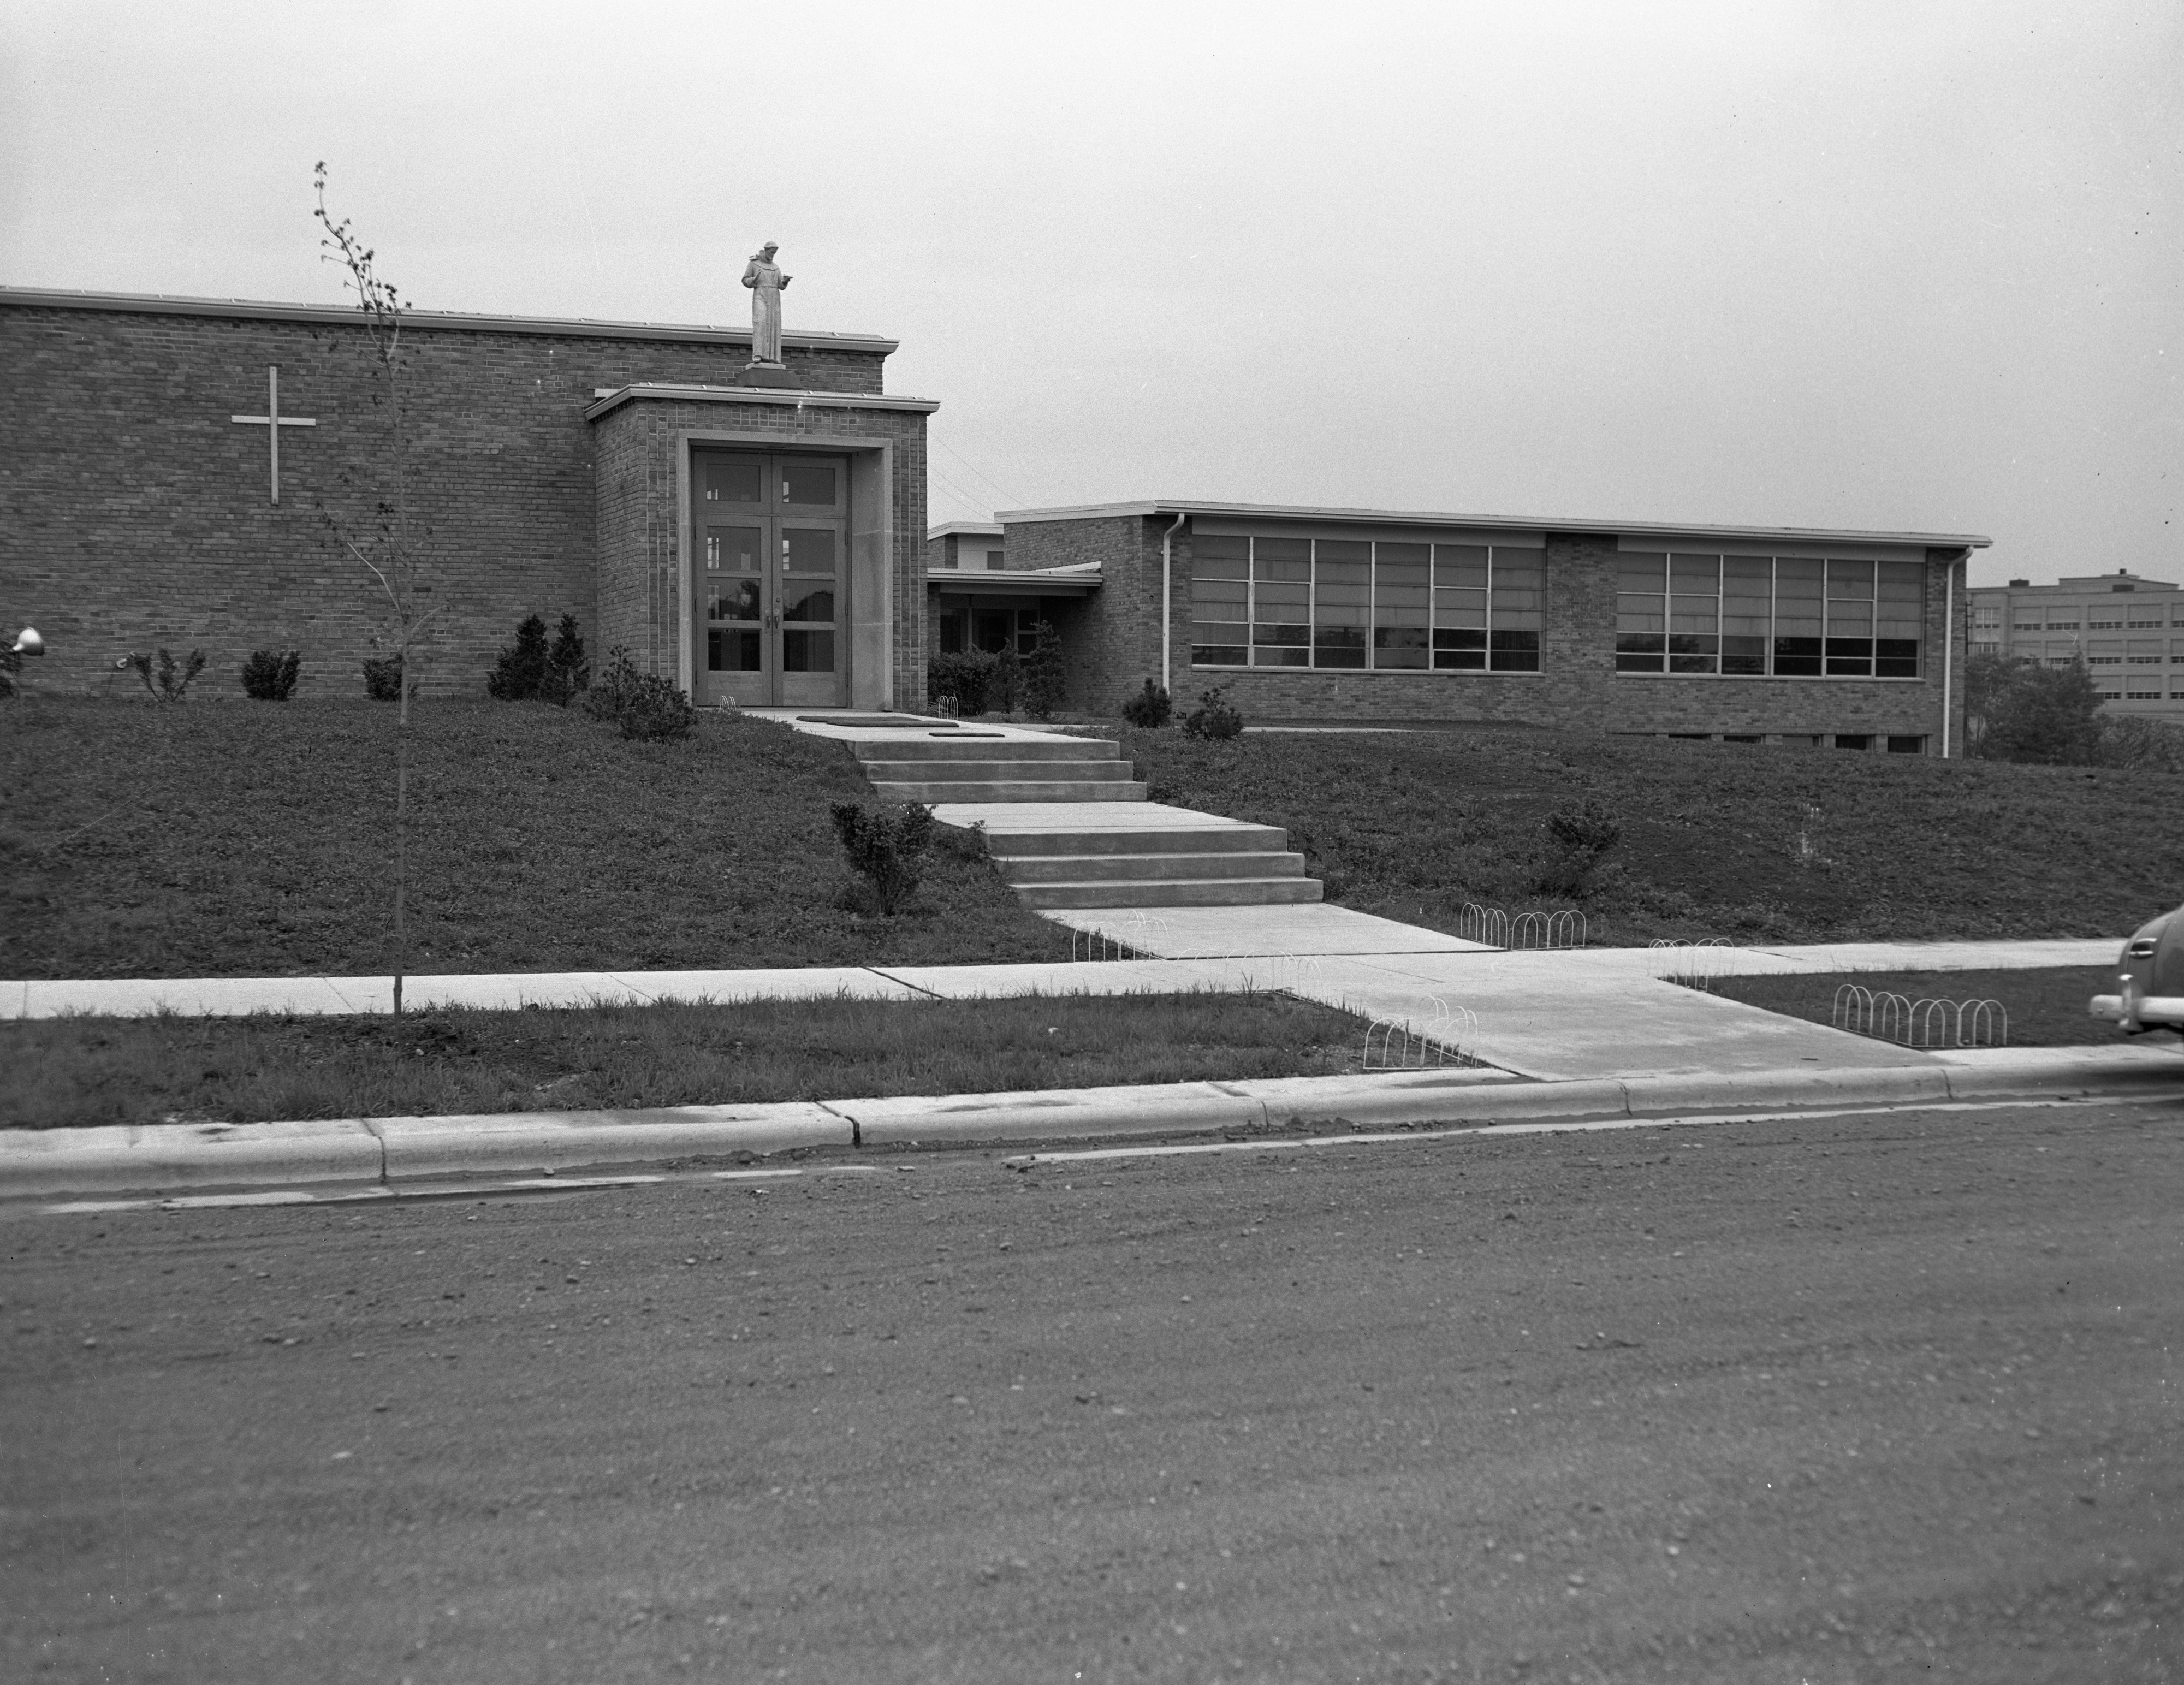 St. Francis of Assisi Church and School, May 1952 image